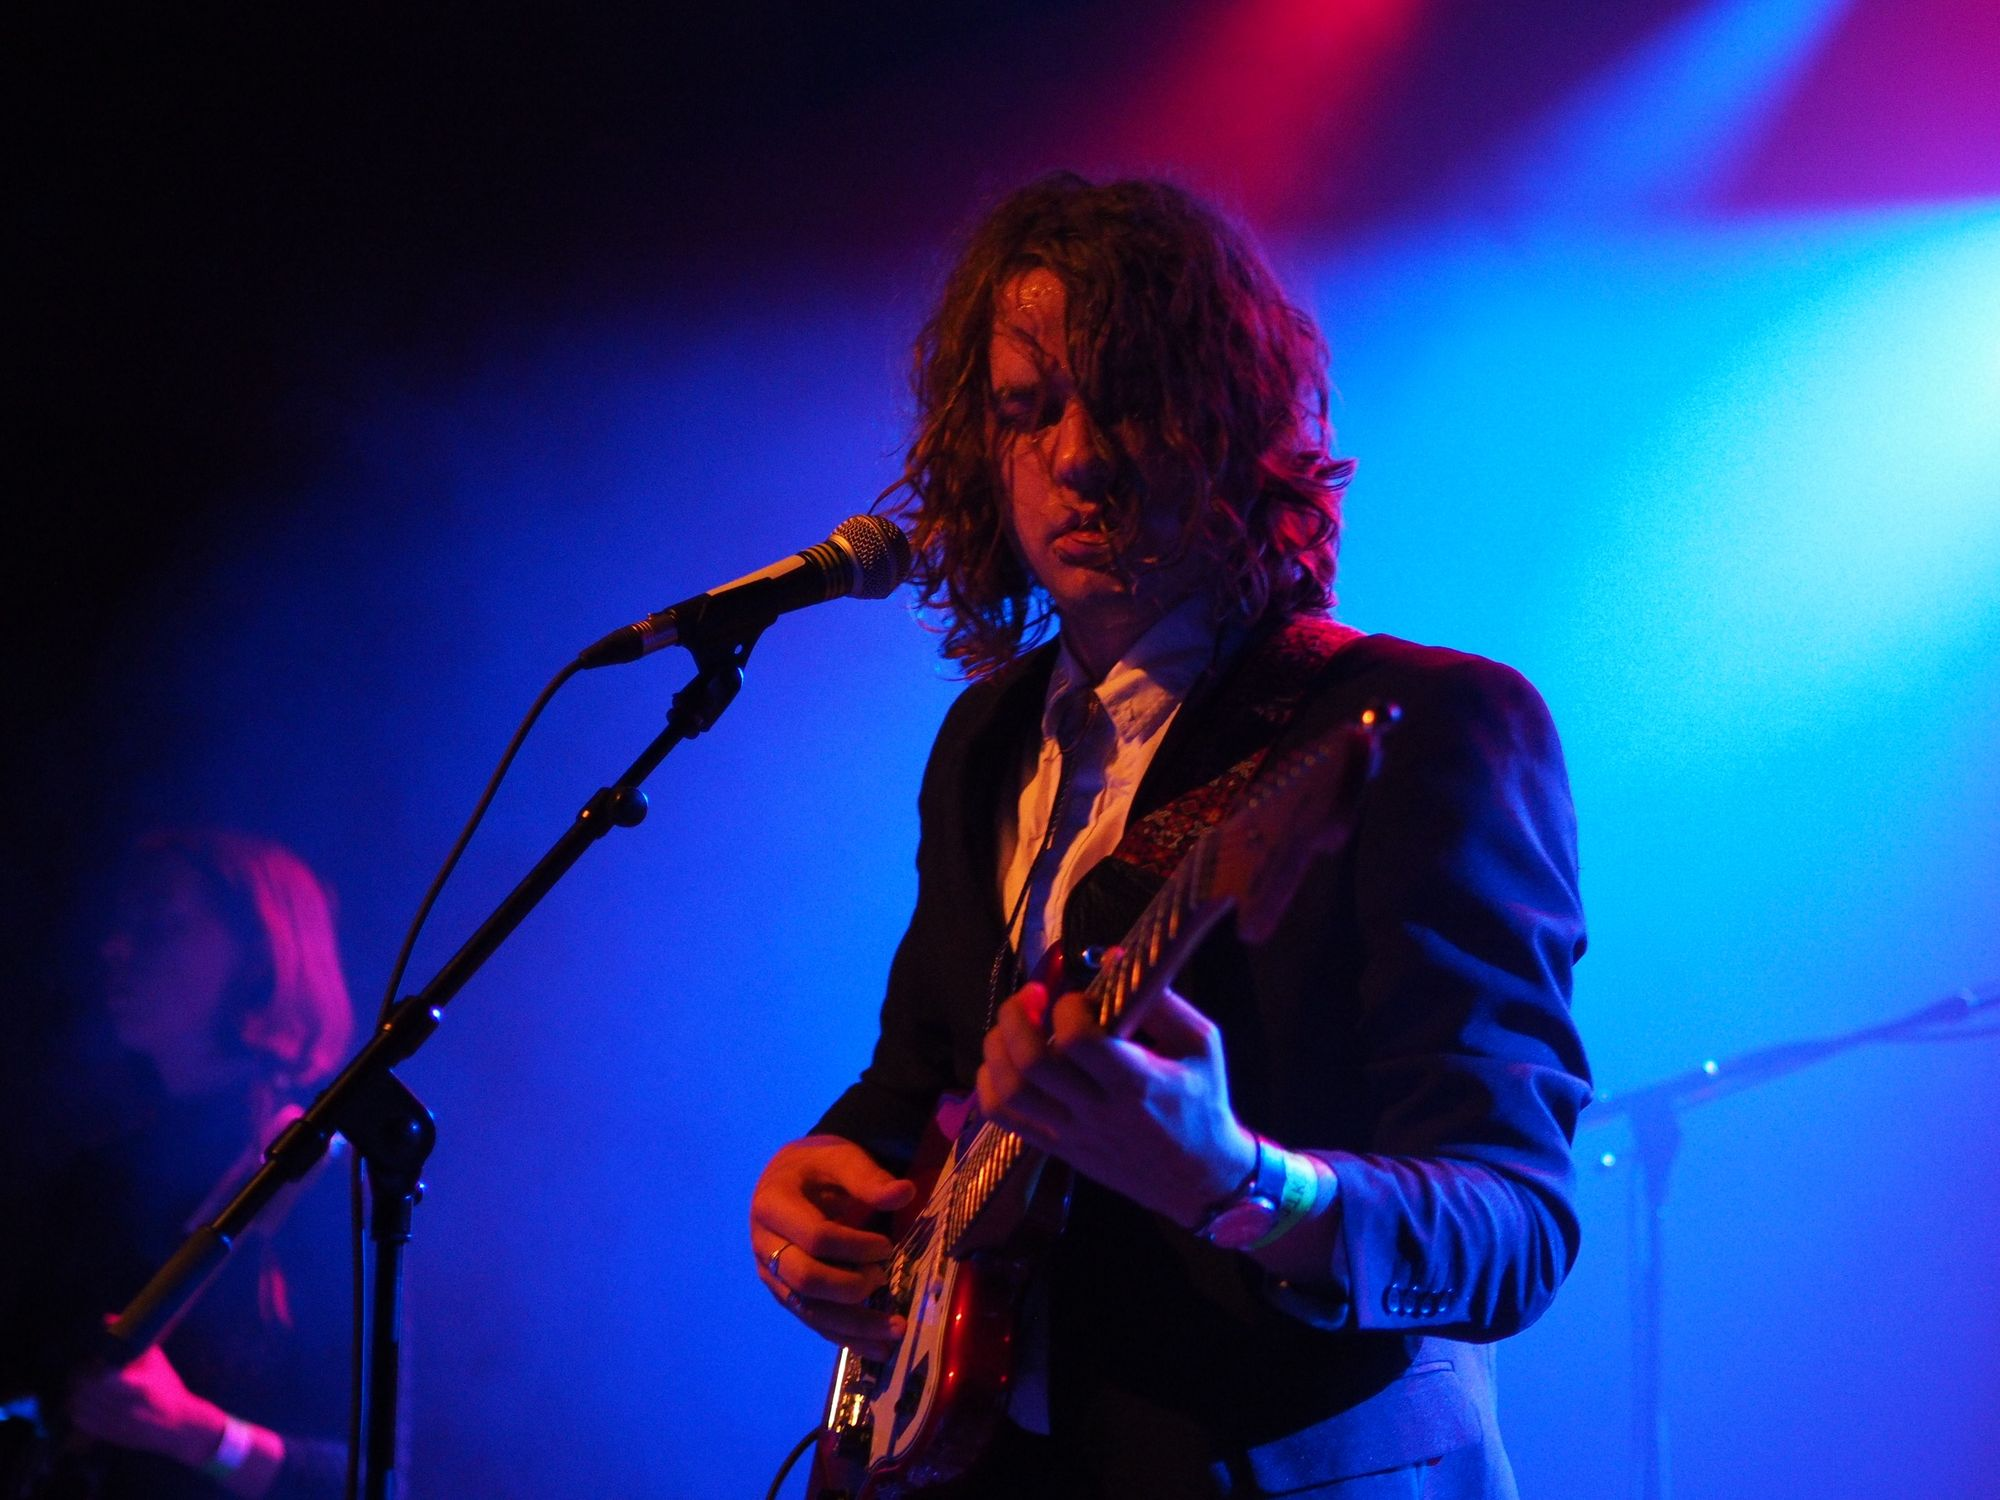 Kevin Morby Interview And Gig Review - Support: Jess Williamson